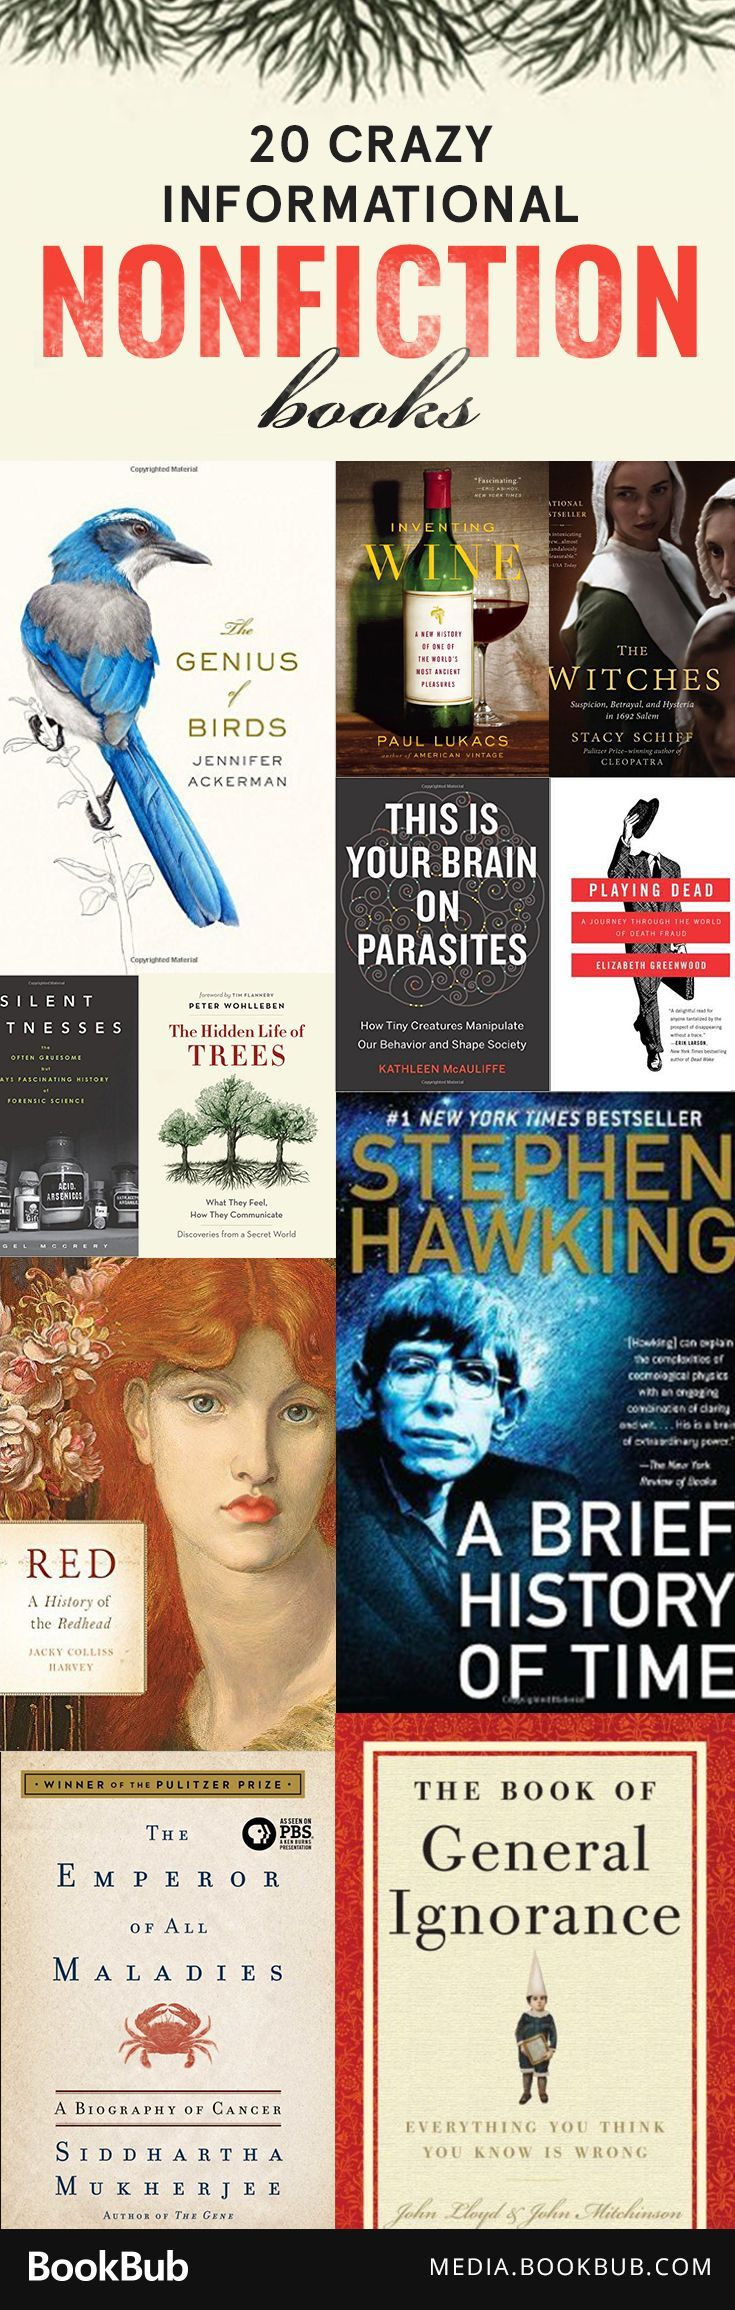 Be an expert on anything from bacon to house cats with these 20 fascinating books.